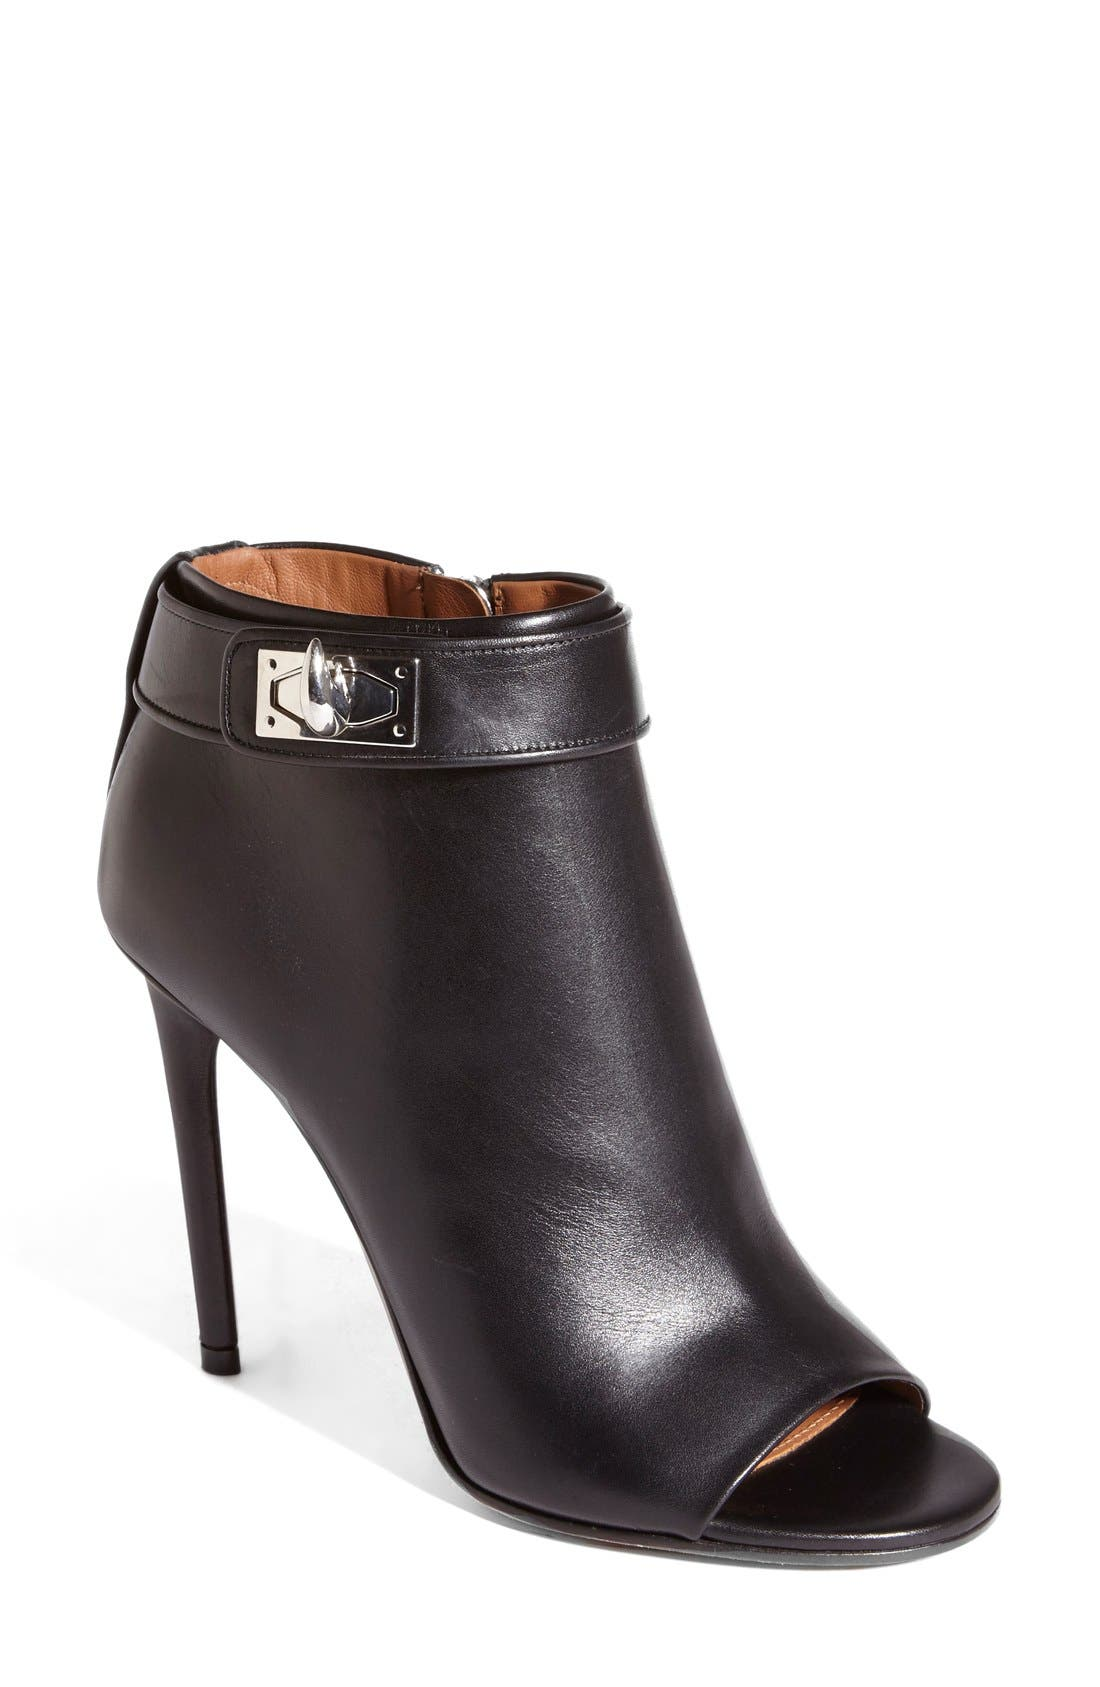 GIVENCHY, 'Ryka' Shark Tooth Open Toe Bootie, Main thumbnail 1, color, 001